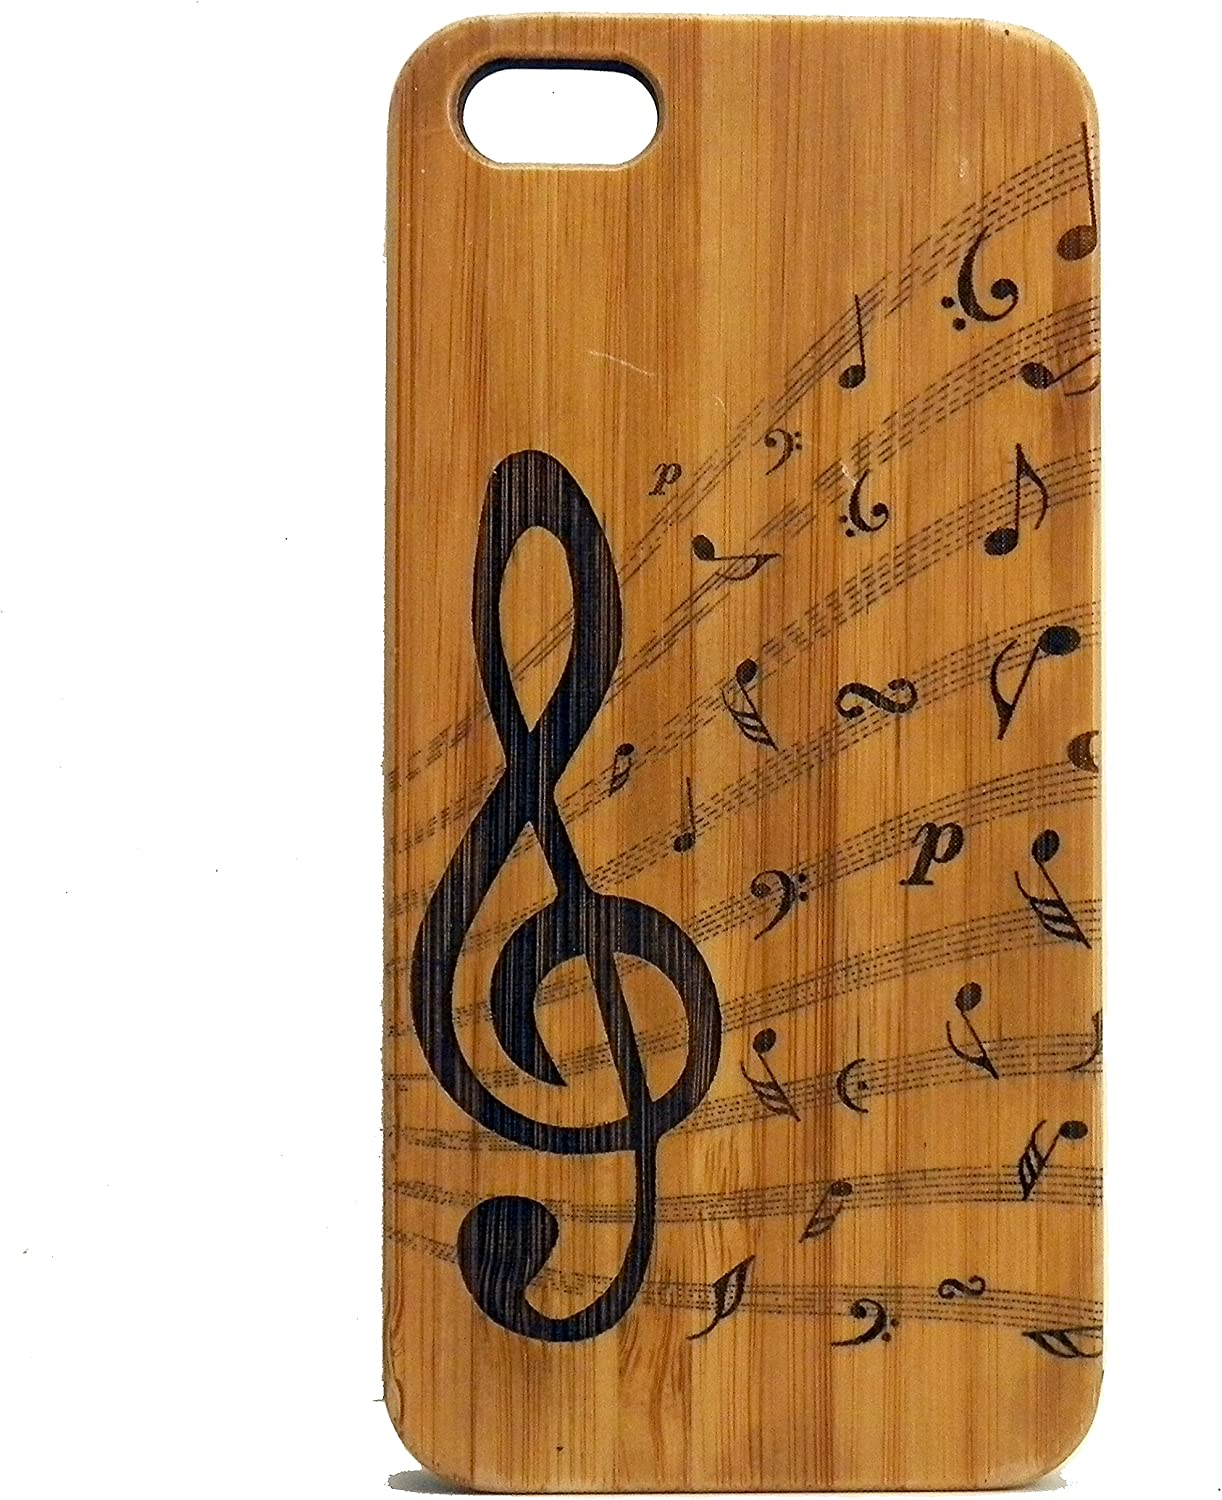 iMakeTheCase Treble Clef Case for iPhone 5, iPhone 5S or iPhone SE (2016) Eco-Friendly Bamboo Wood Cover | Music Musician Orchestra Songwriter Choir